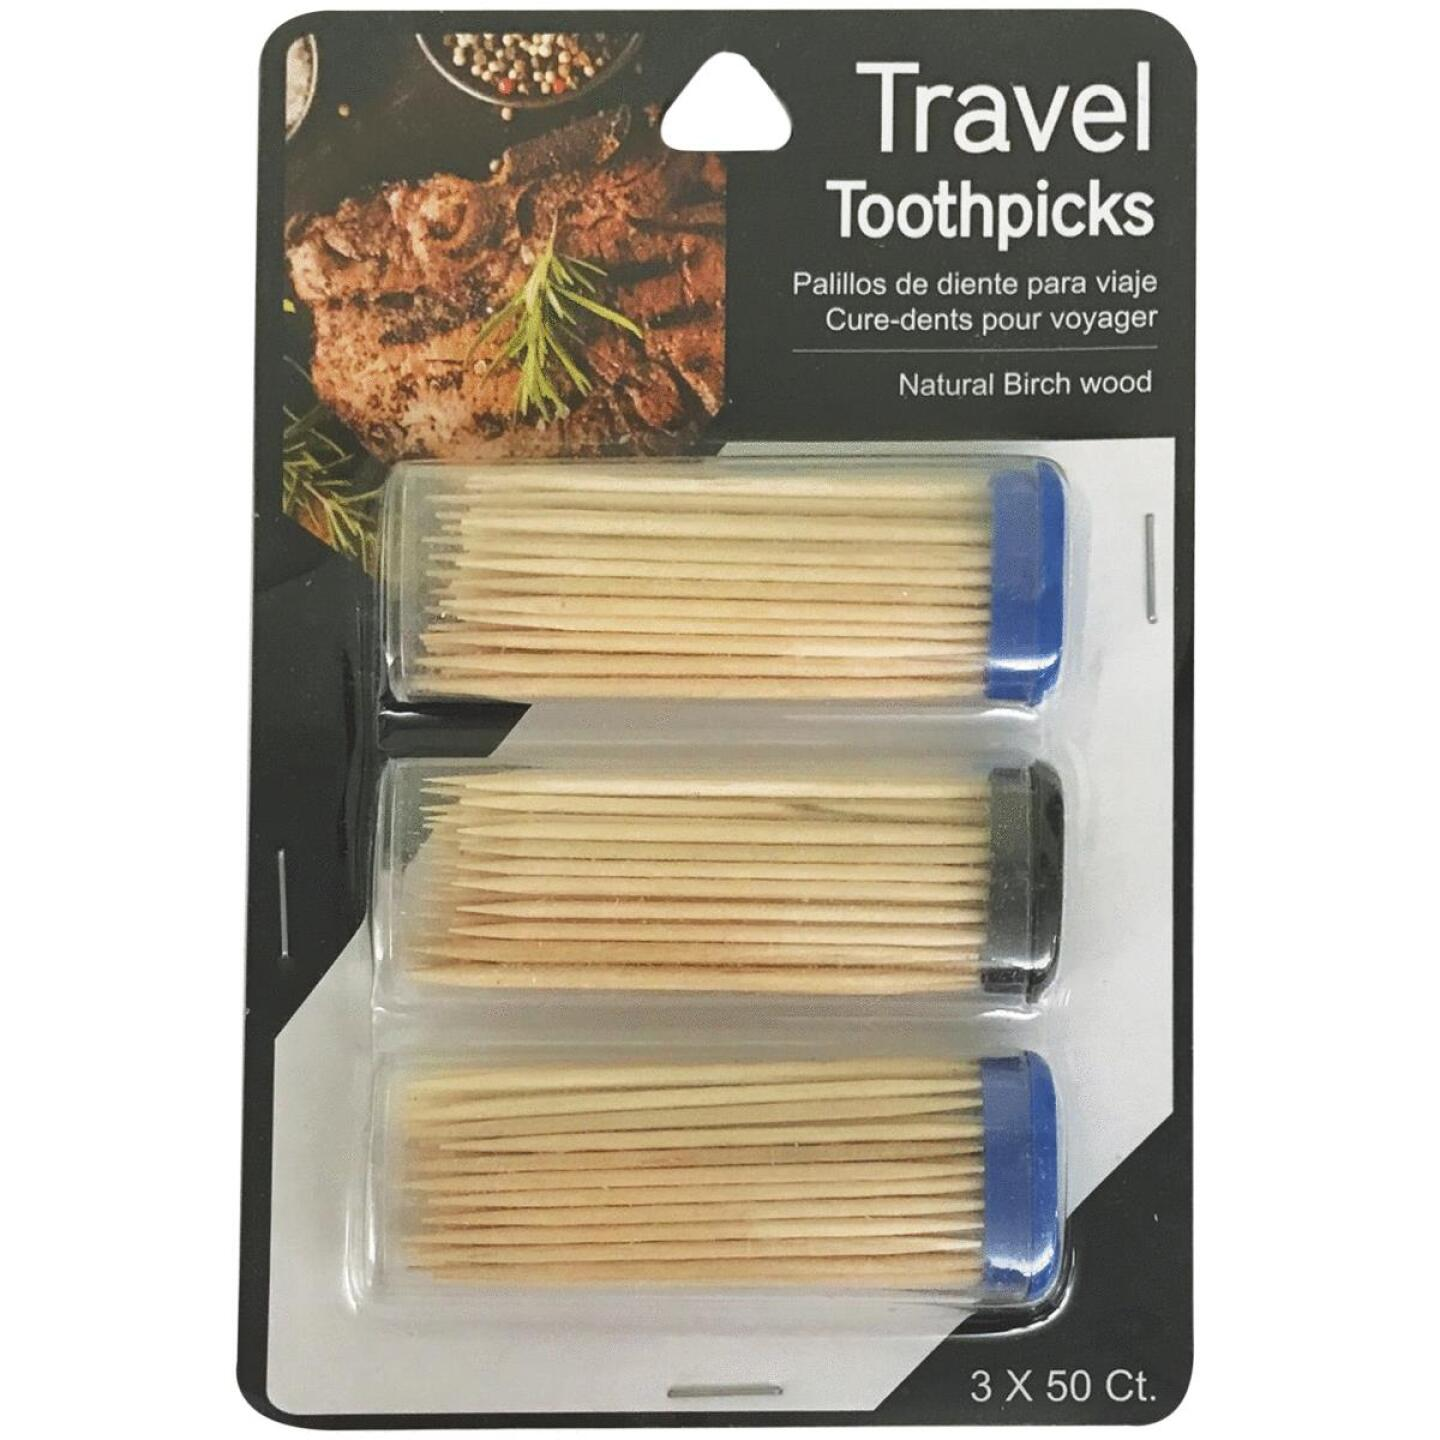 Jacent 50 Per Tube Travel Toothpicks (3-Pack) Image 1